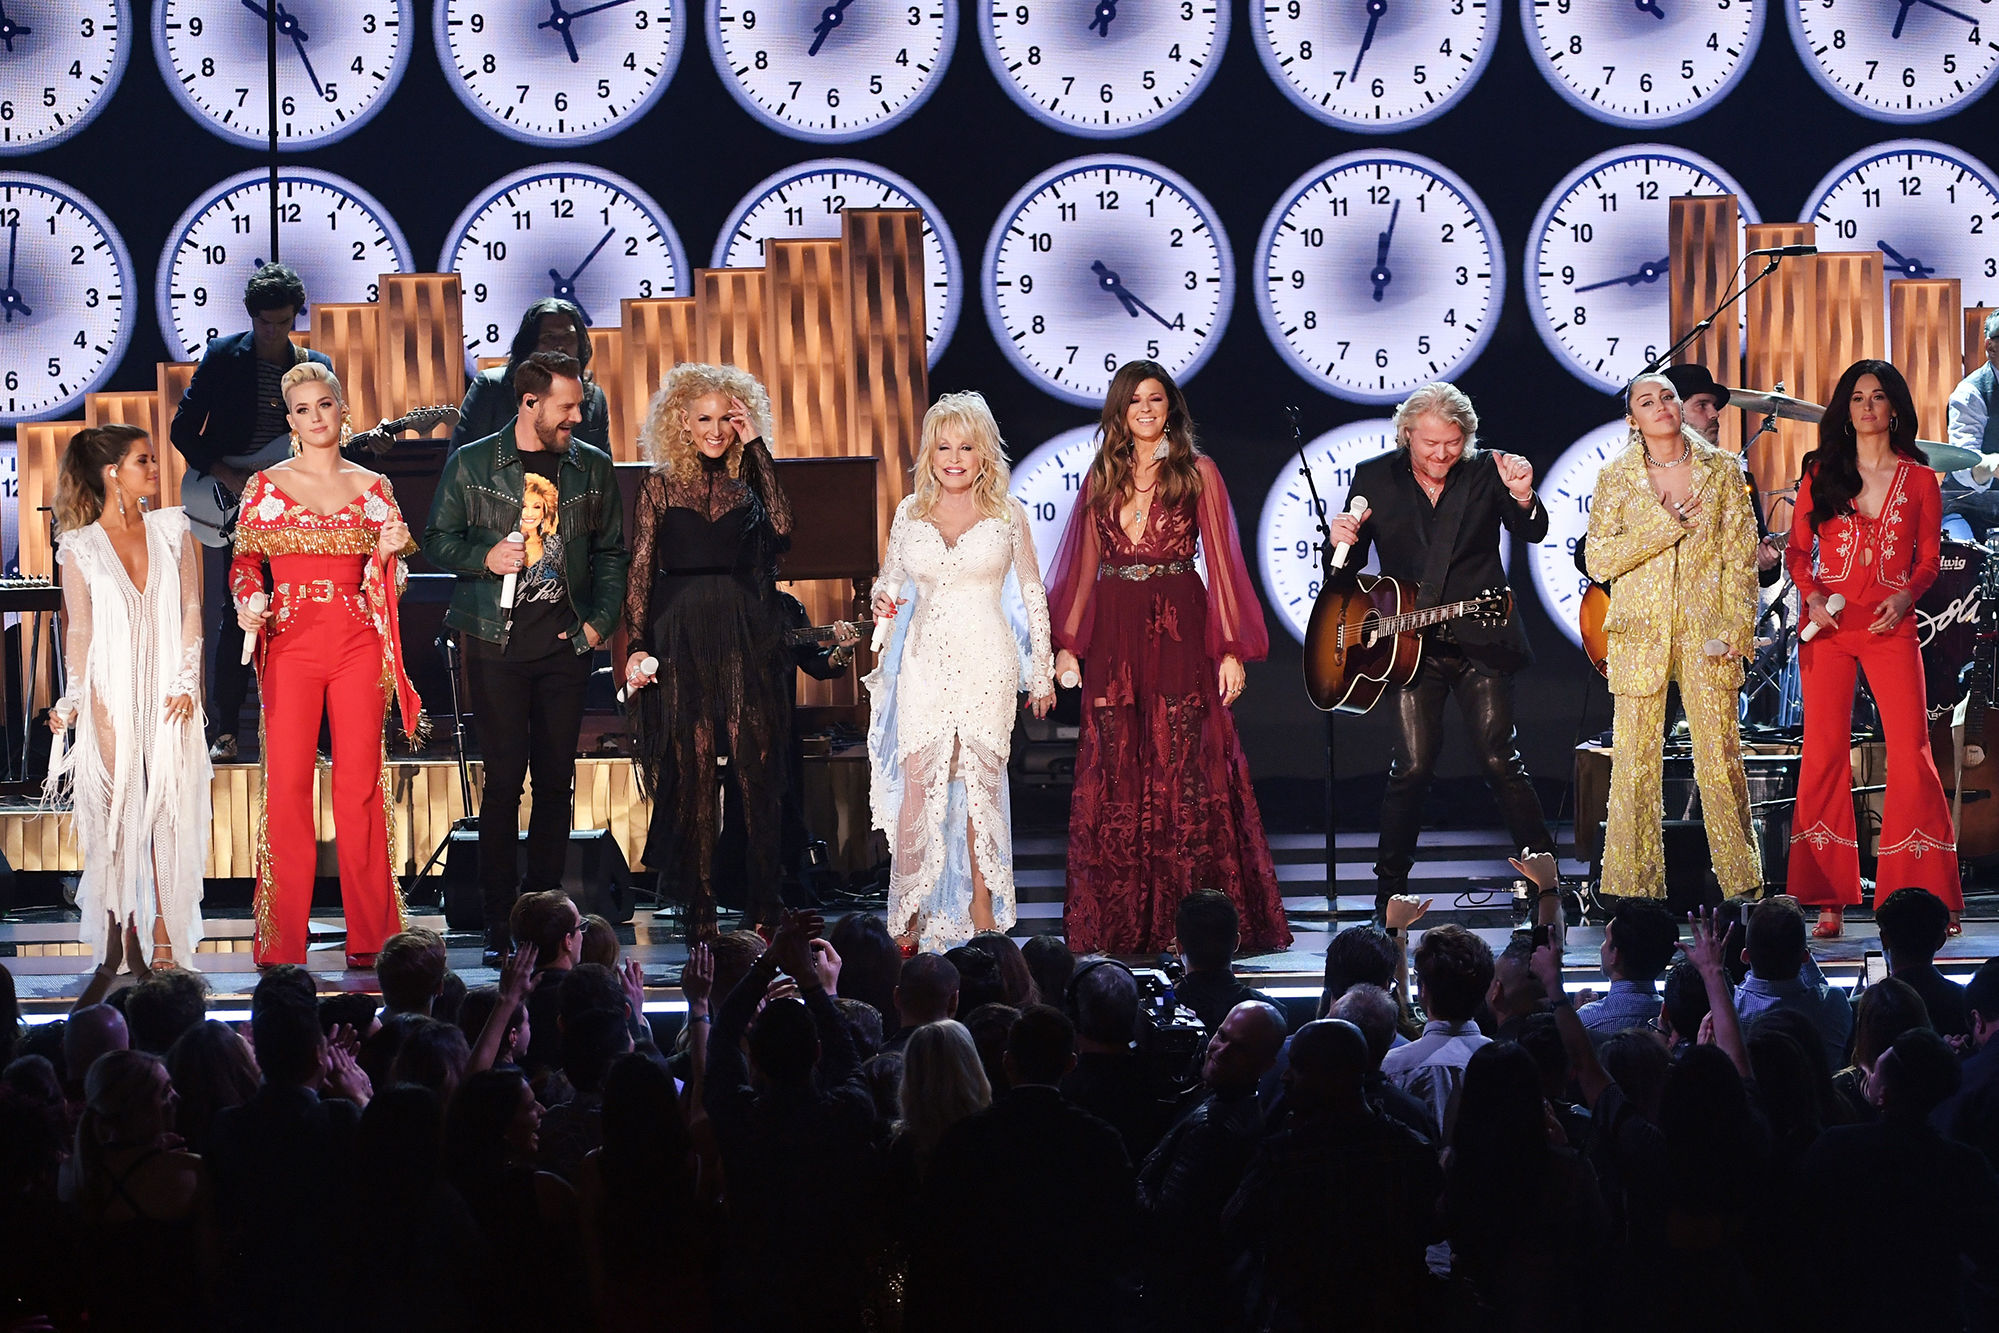 Miley Cyrus, Kacey Musgraves & More Bring Audience to Their Feet with Dolly Parton Grammys Tribute